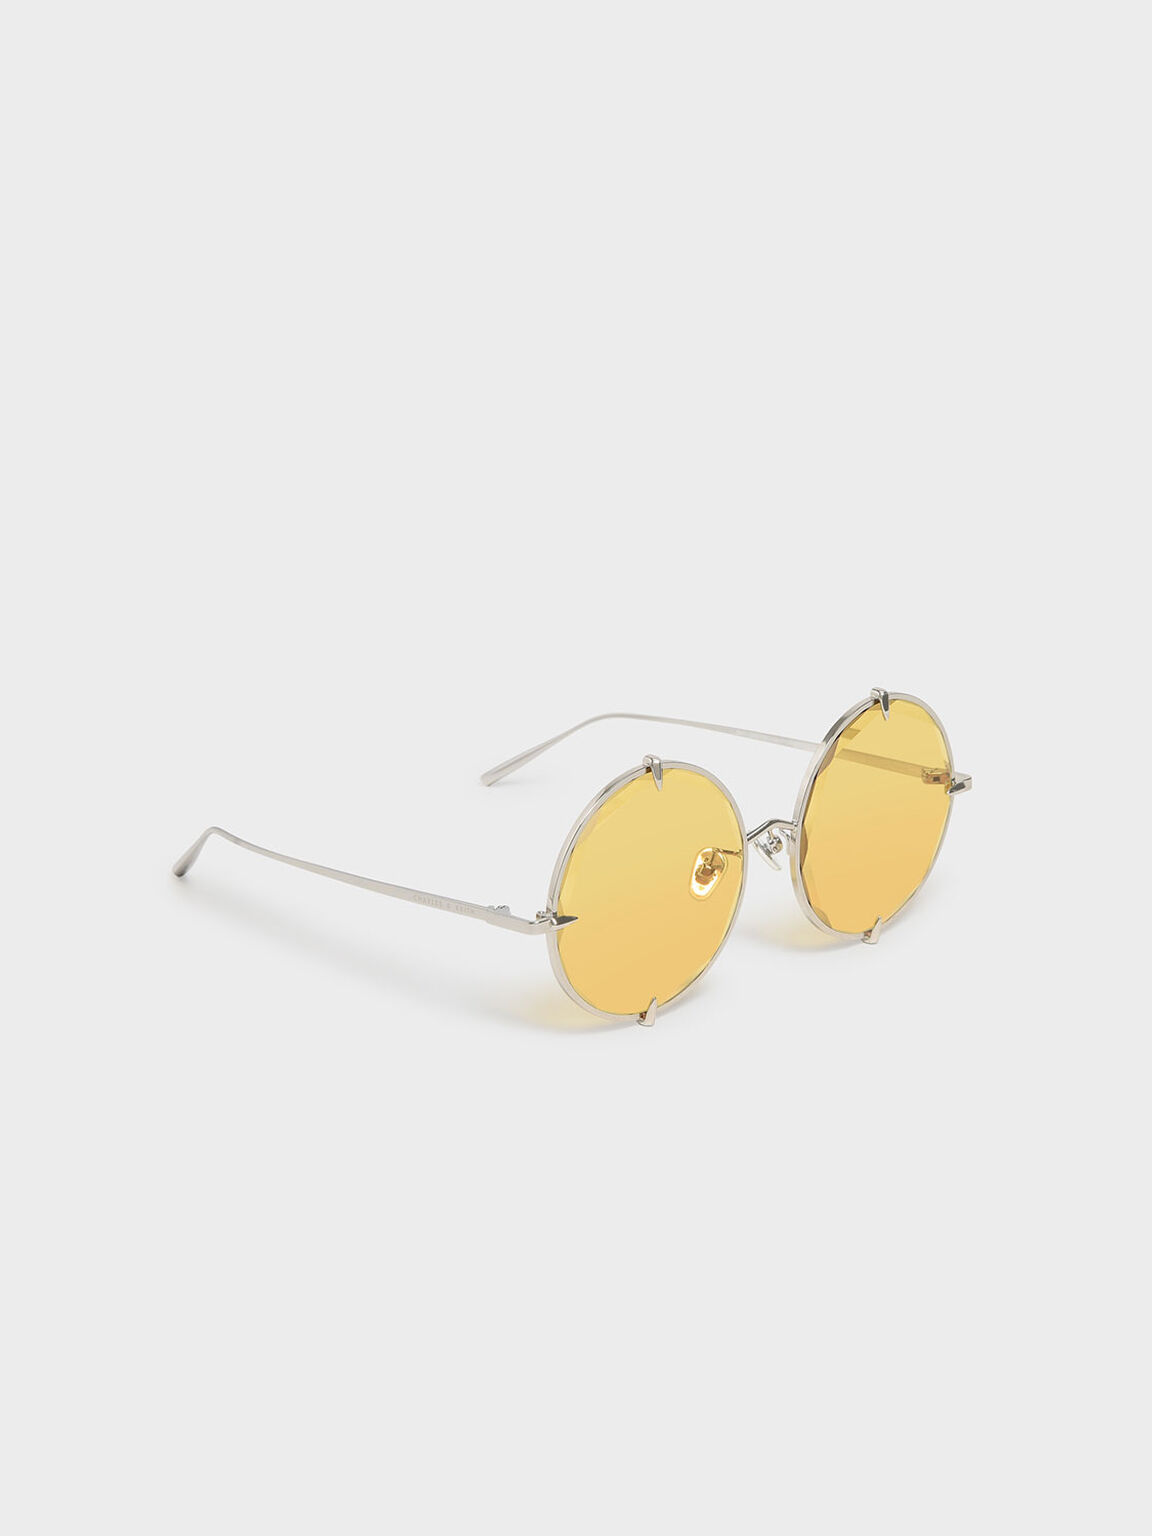 Round Wire Frame Skinny Sunglasses, Yellow, hi-res